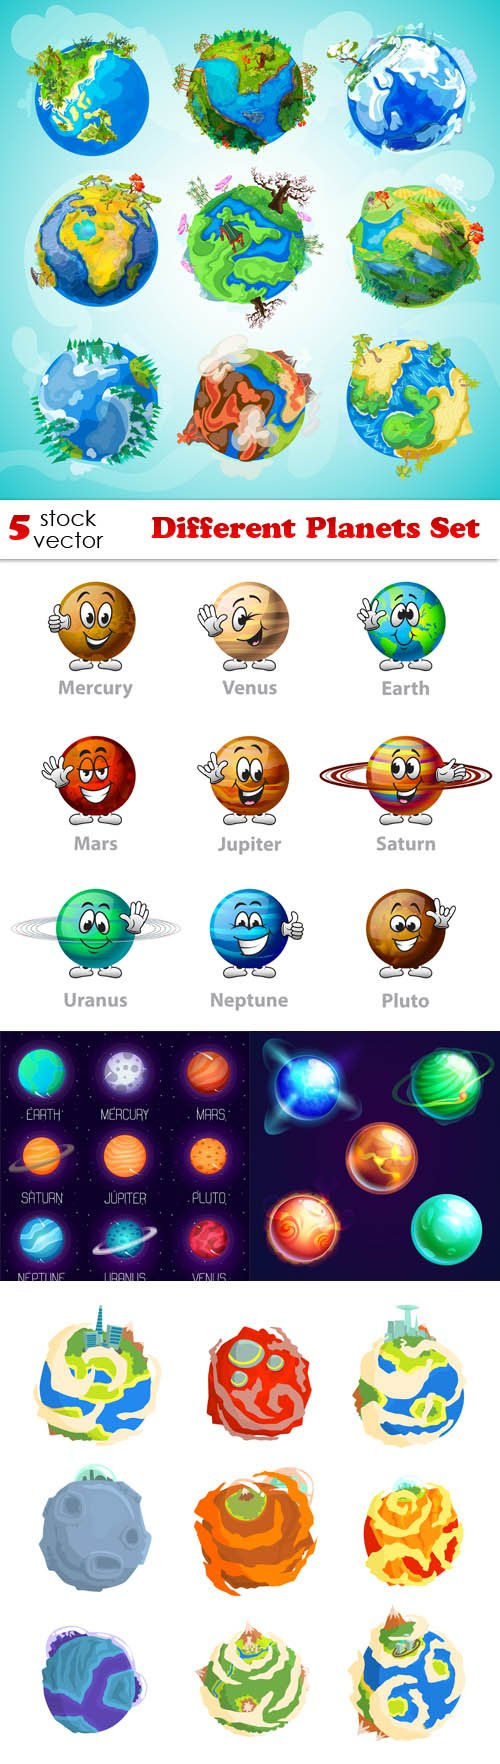 Vectors - Different Planets Set